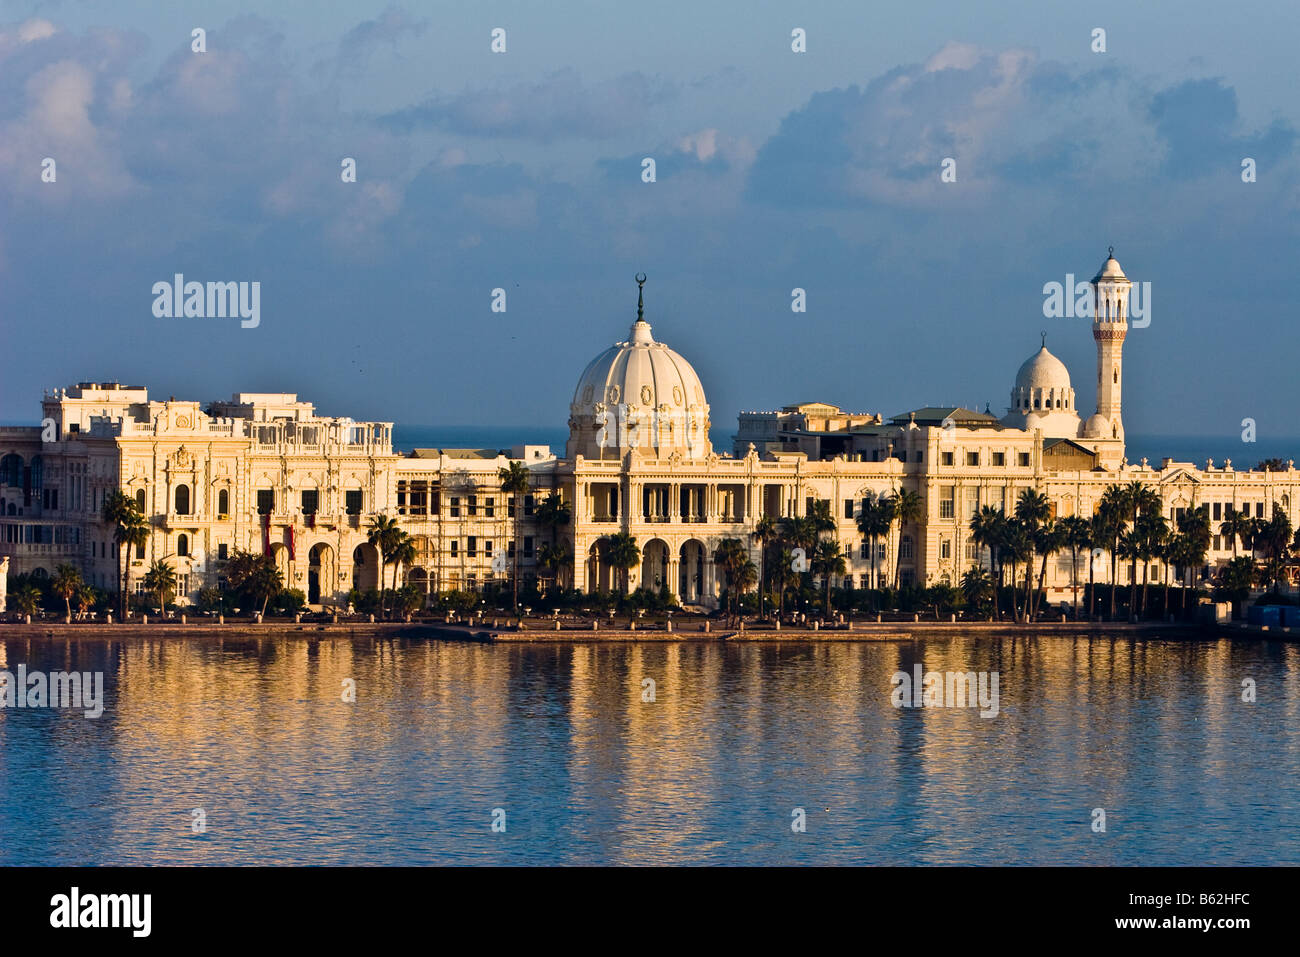 Stock Photo  The Sun Rises On Ras El–tin Palace In Alexandria, Egypt And  Its Reflection Is Cast In The Waters Of The Harbor